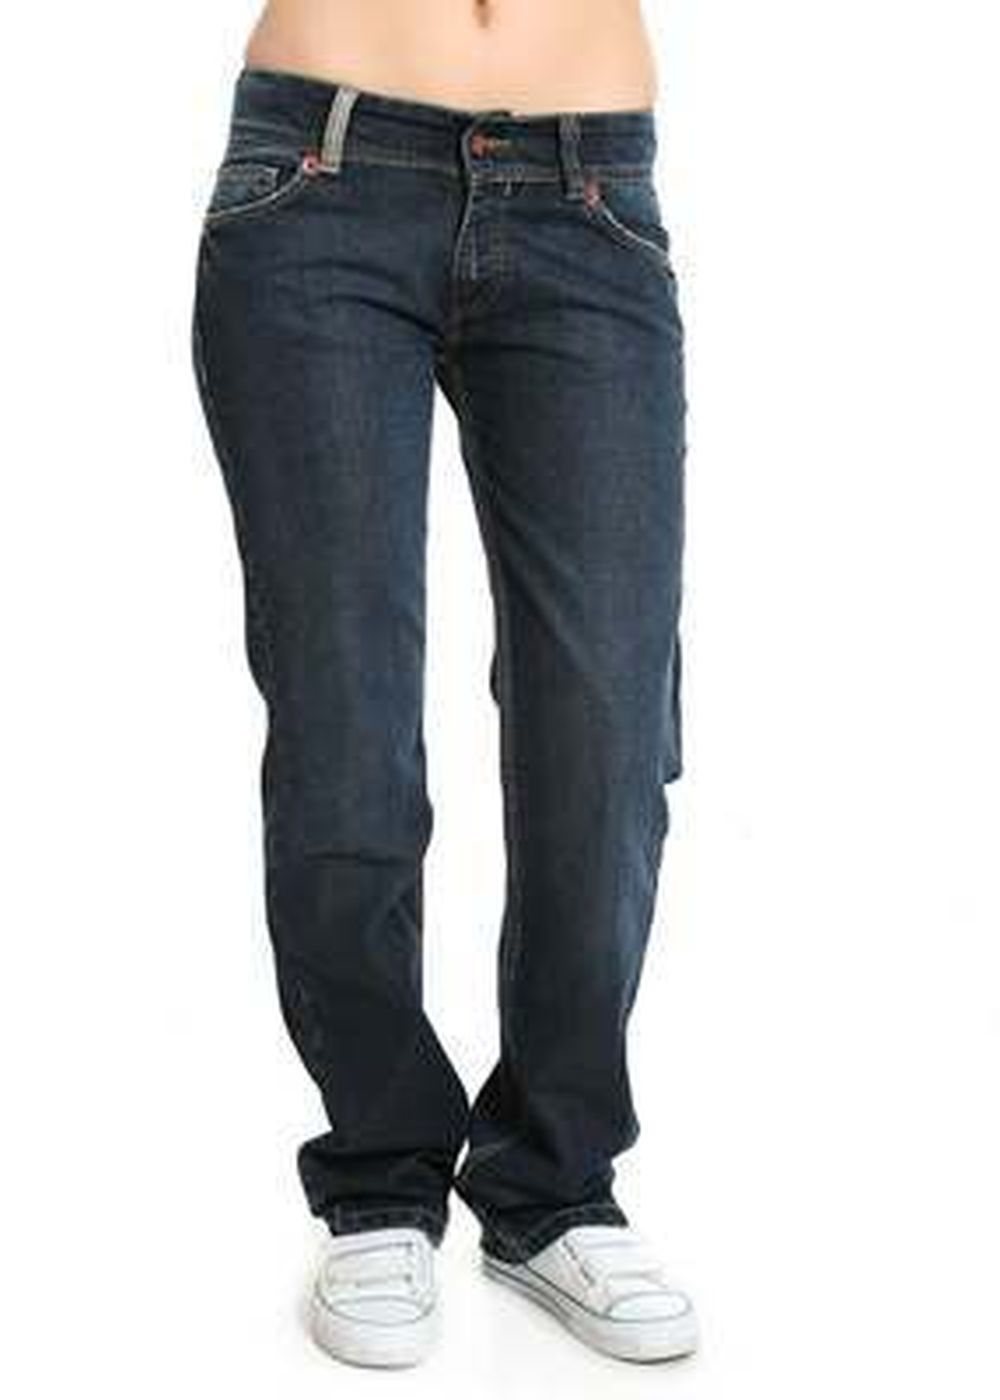 OXBOW FOSSE JEANS Used Denim